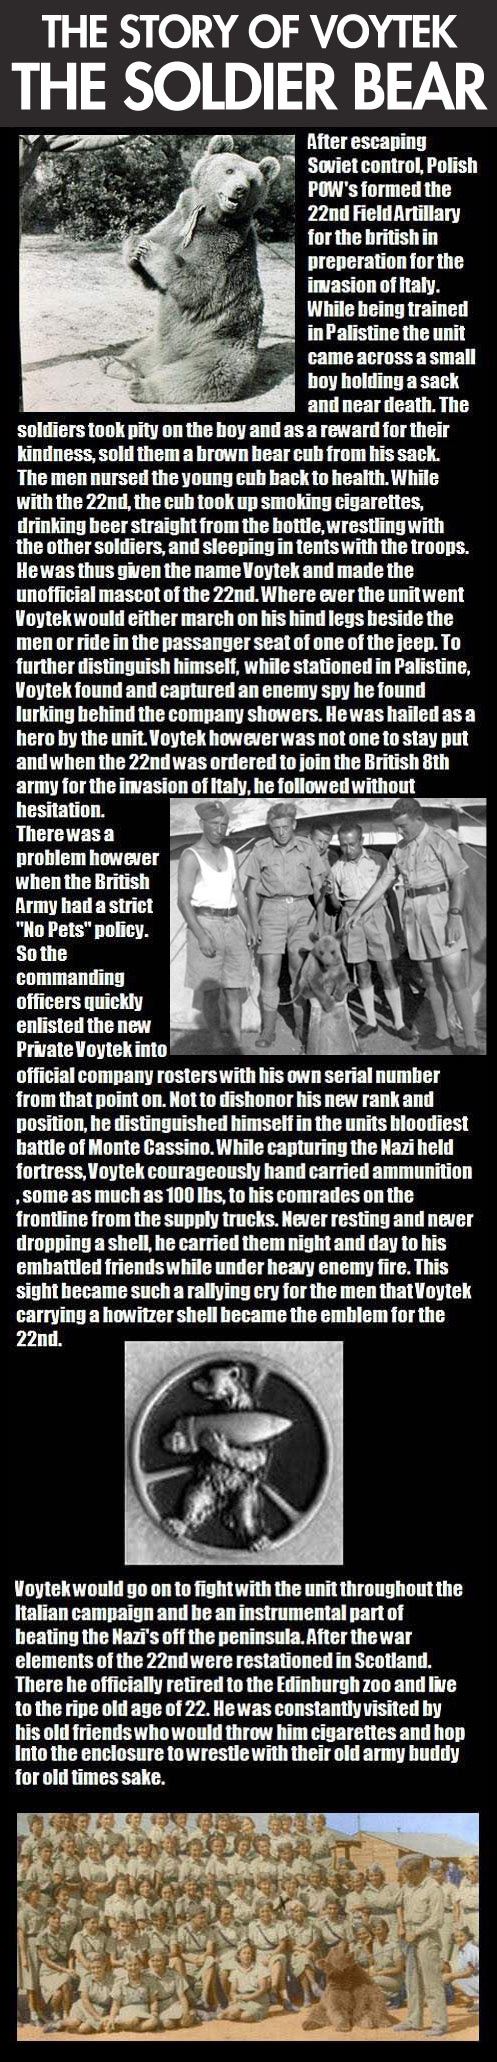 The story of the soldier bear…